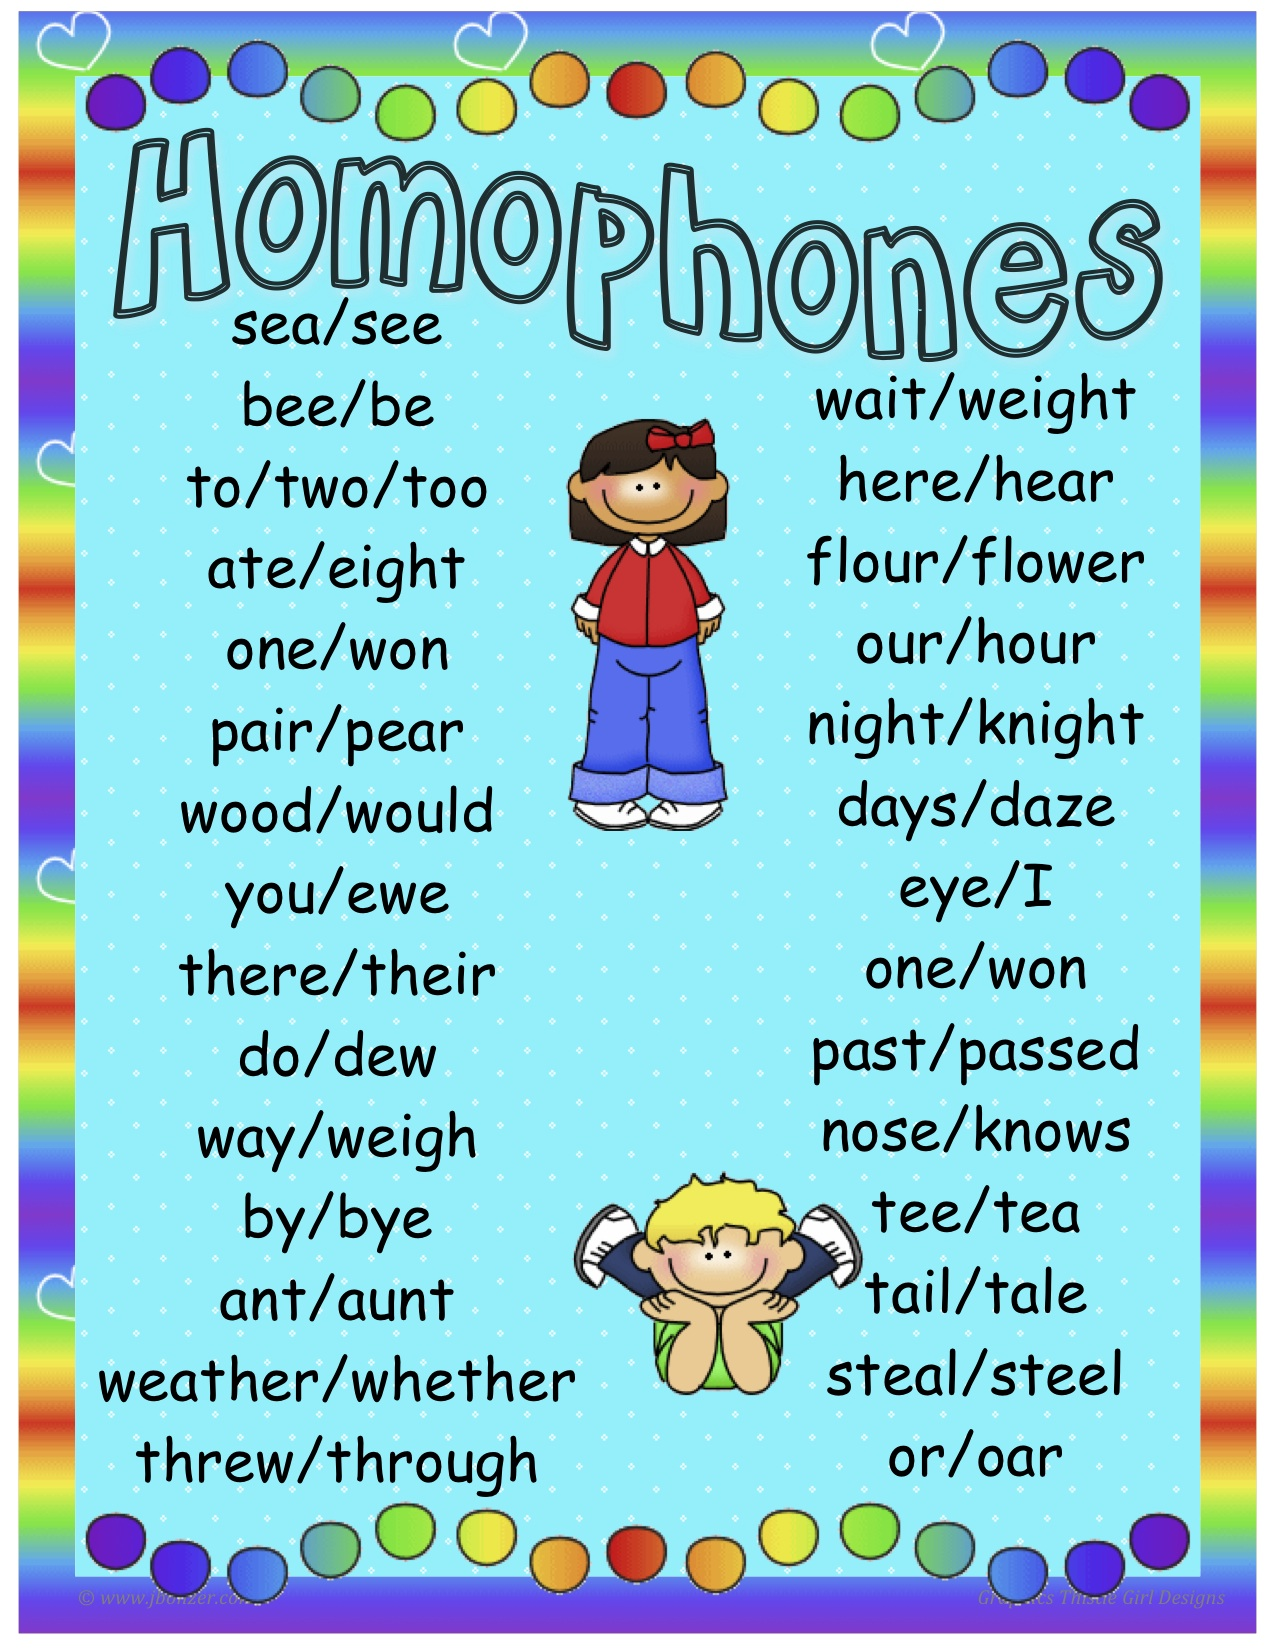 Homophones word list pictures to pin on pinterest